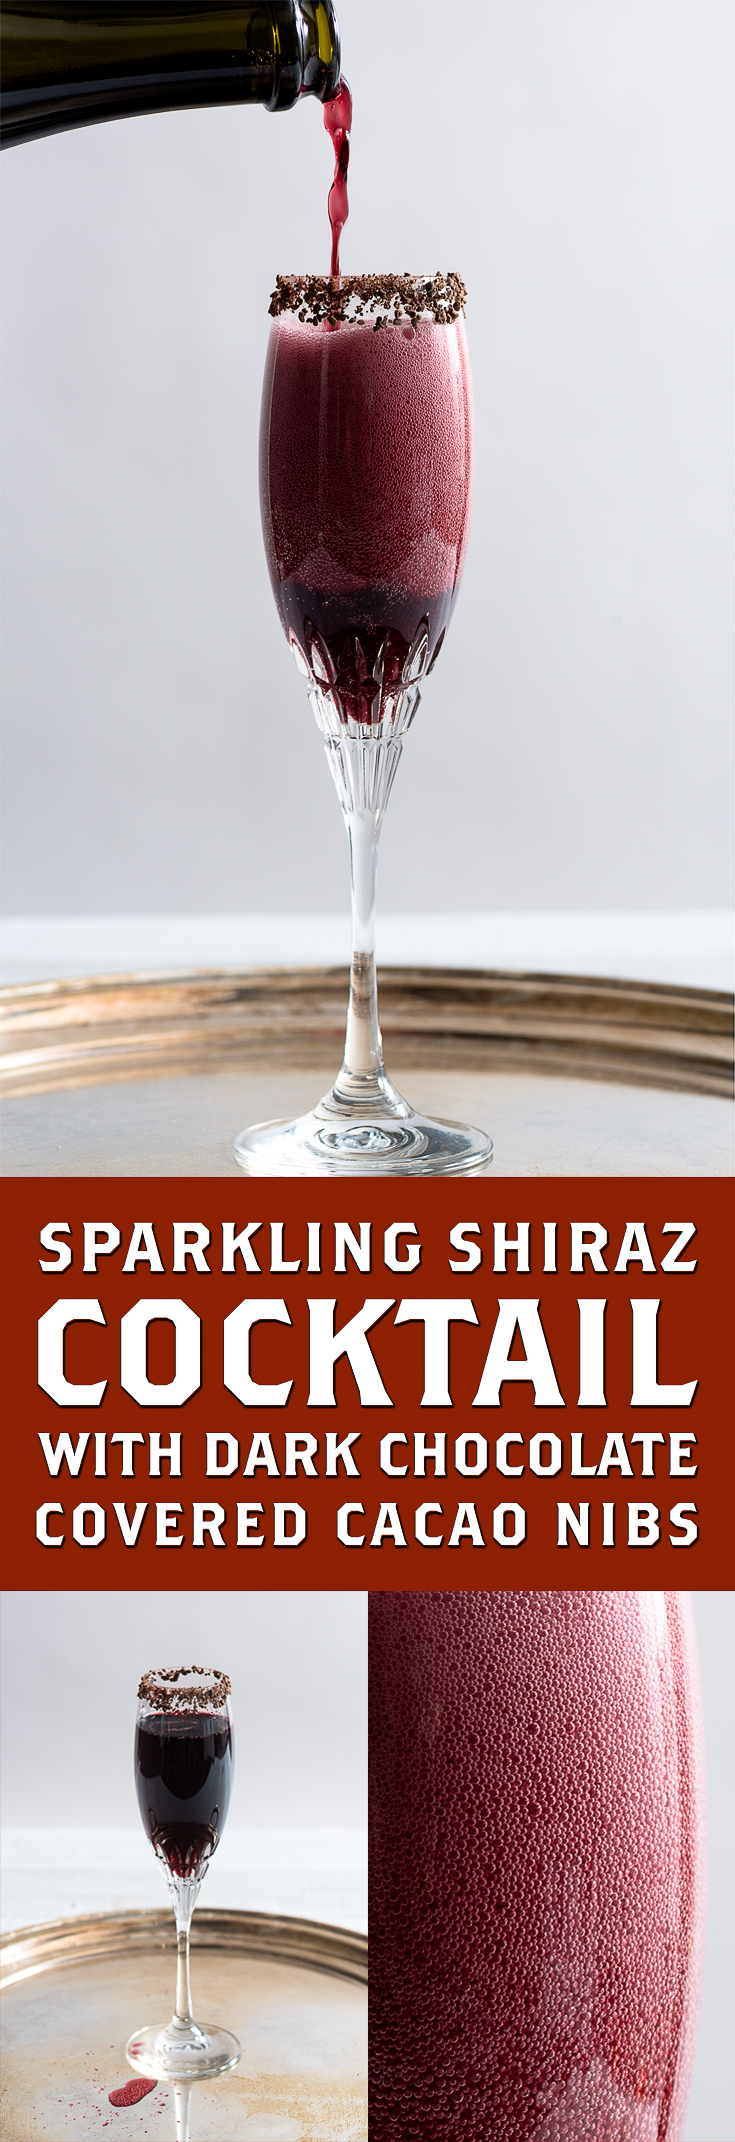 Sparkling-Shiraz-Cacao-Nib-Cocktail-pin